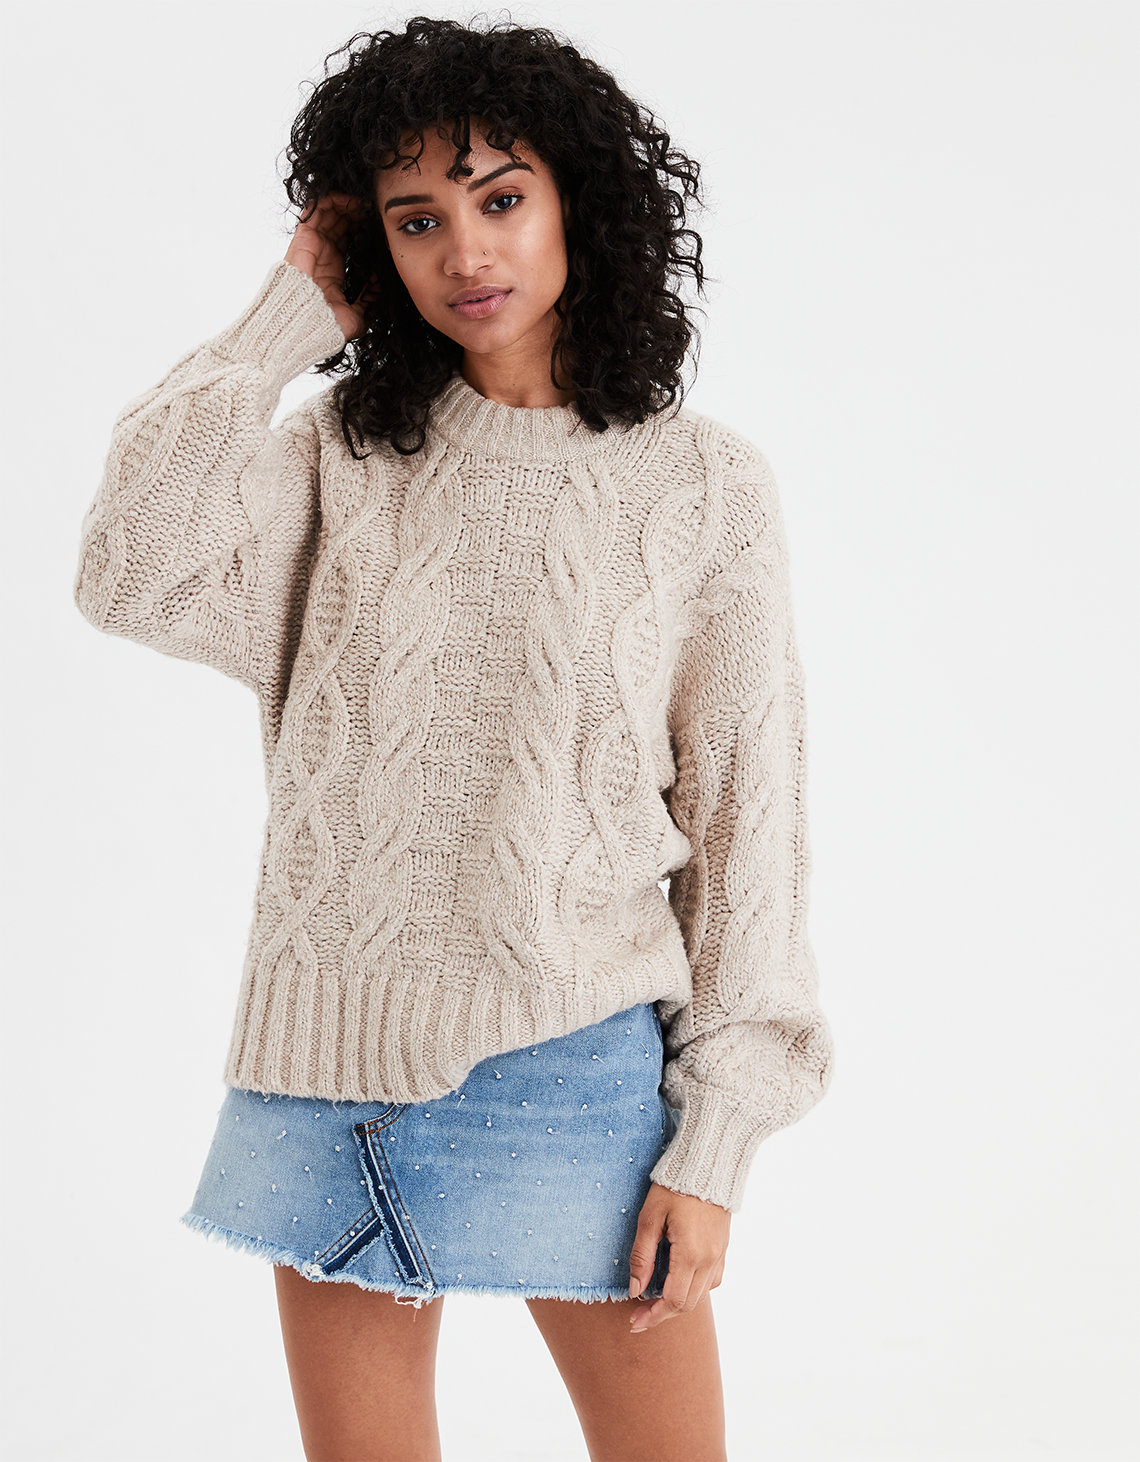 908353784f1b2 AE Chunky Cable Knit Pullover Sweater. Placeholder image. Product Image